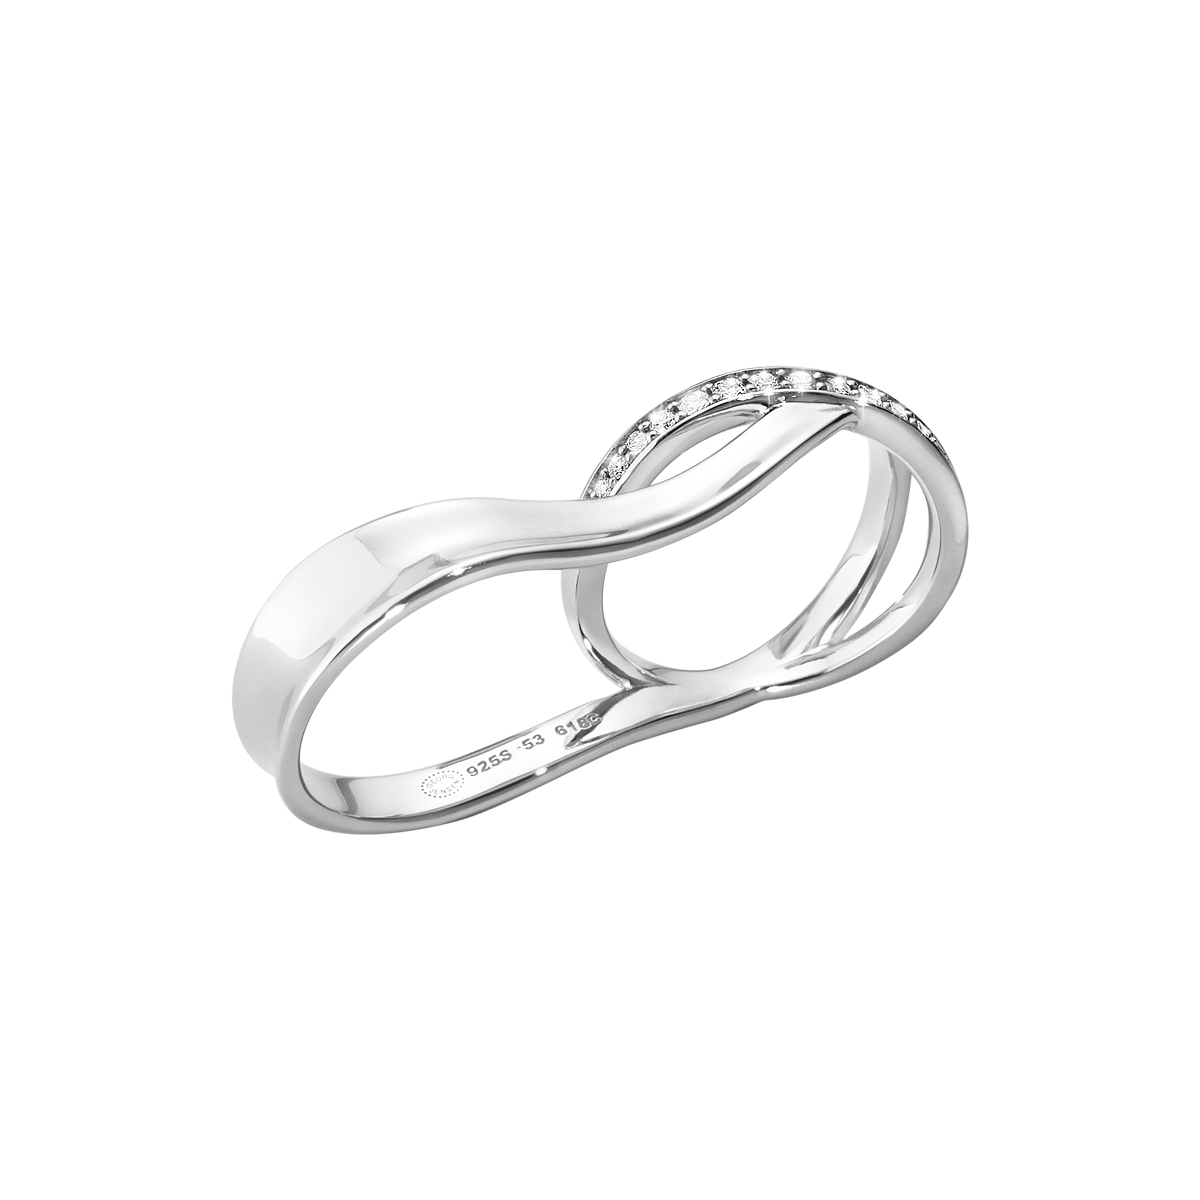 Marcia Ring Sterling Silver With Brilliant Cut Diamonds